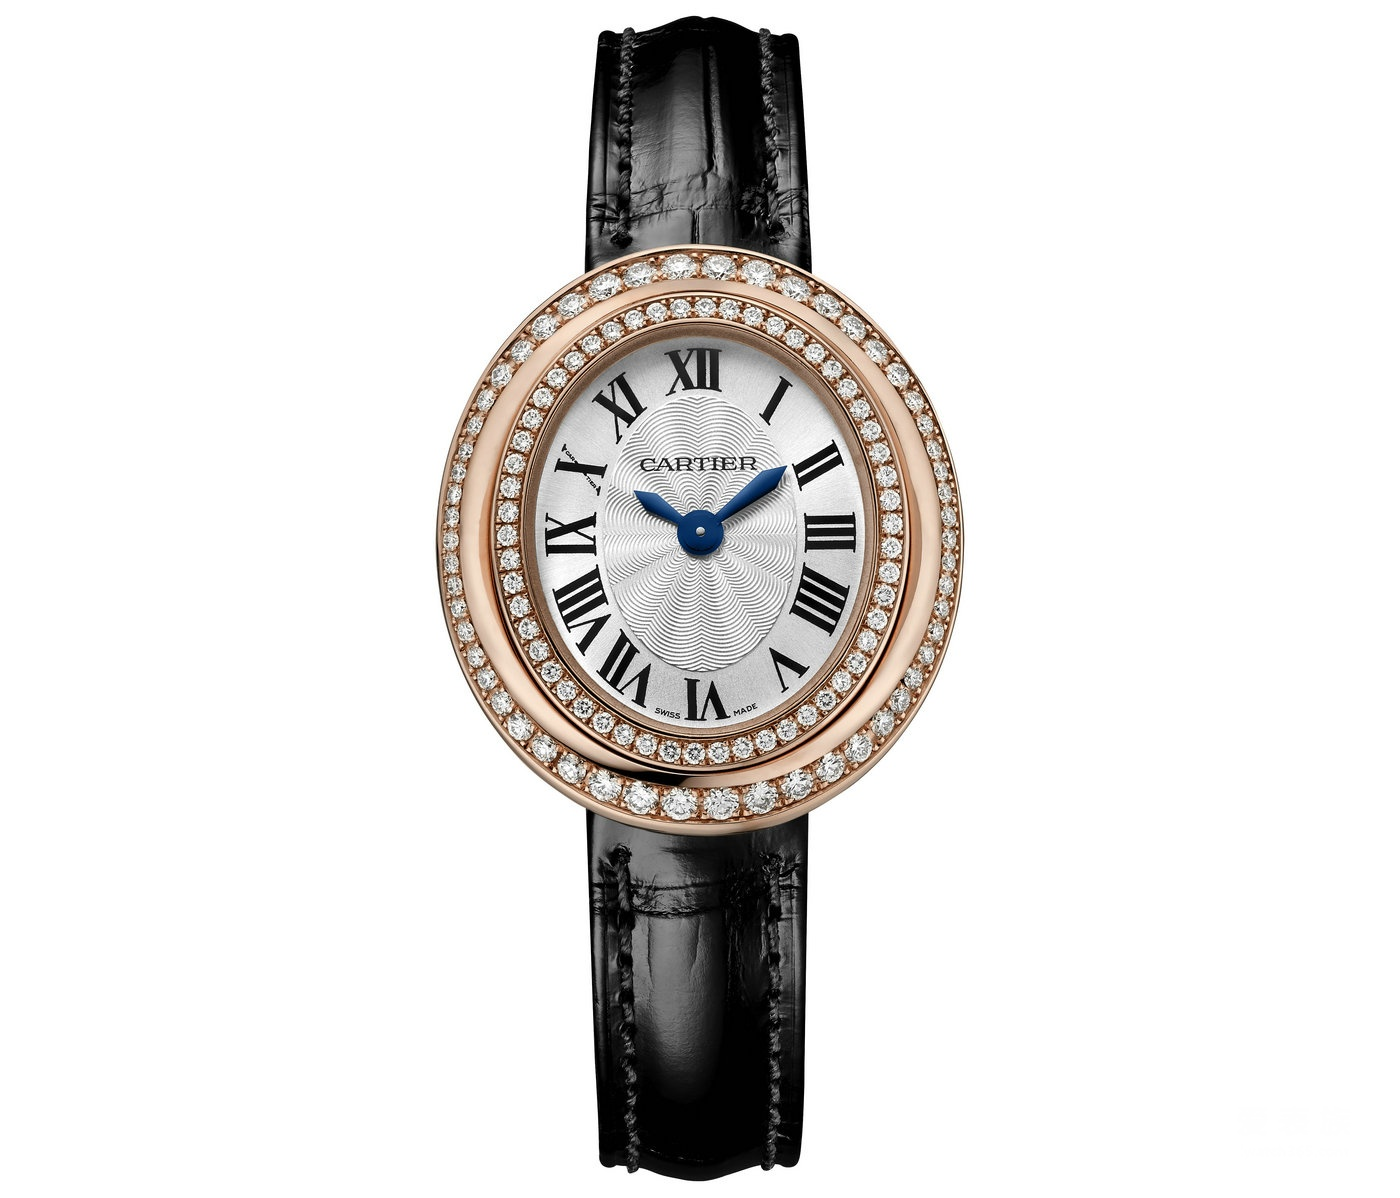 Cartier Hypnose WJHY0006 Replica Watches With White Dials